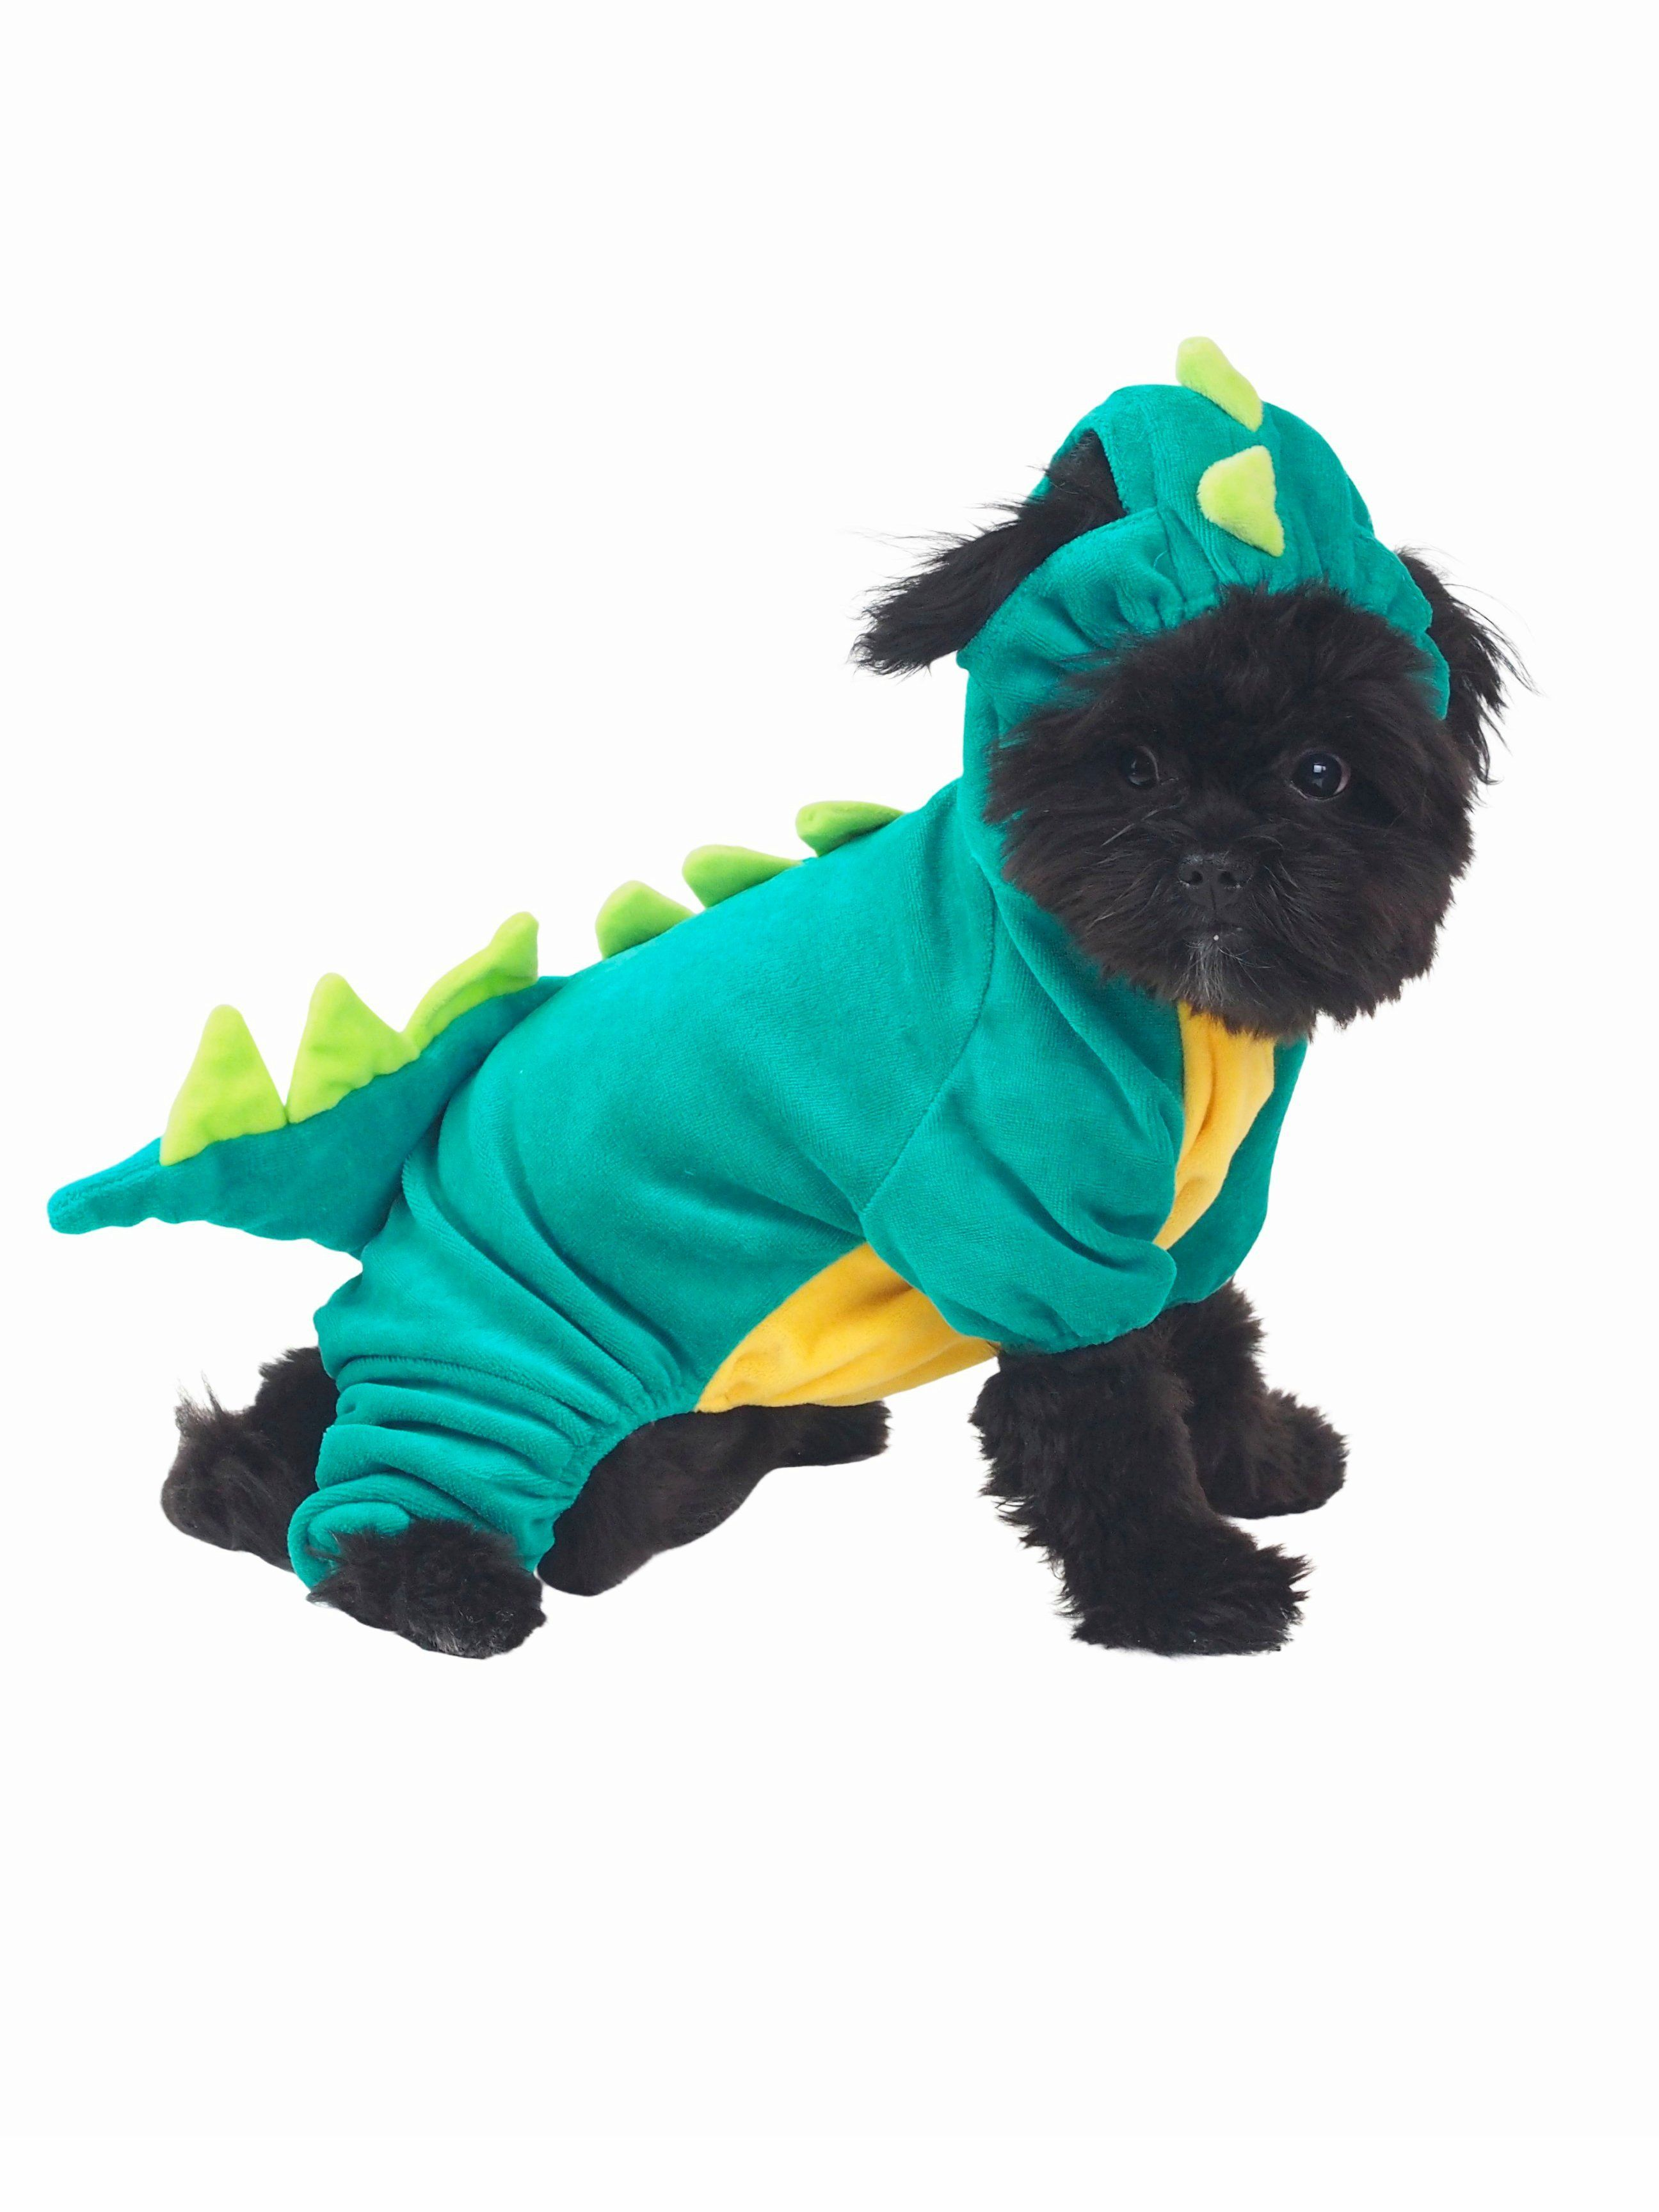 How Much Was Spent On Halloween Costumes For Pets 2020 Spikey Dragon Dog Costume   Funny dog costumes are our thing here